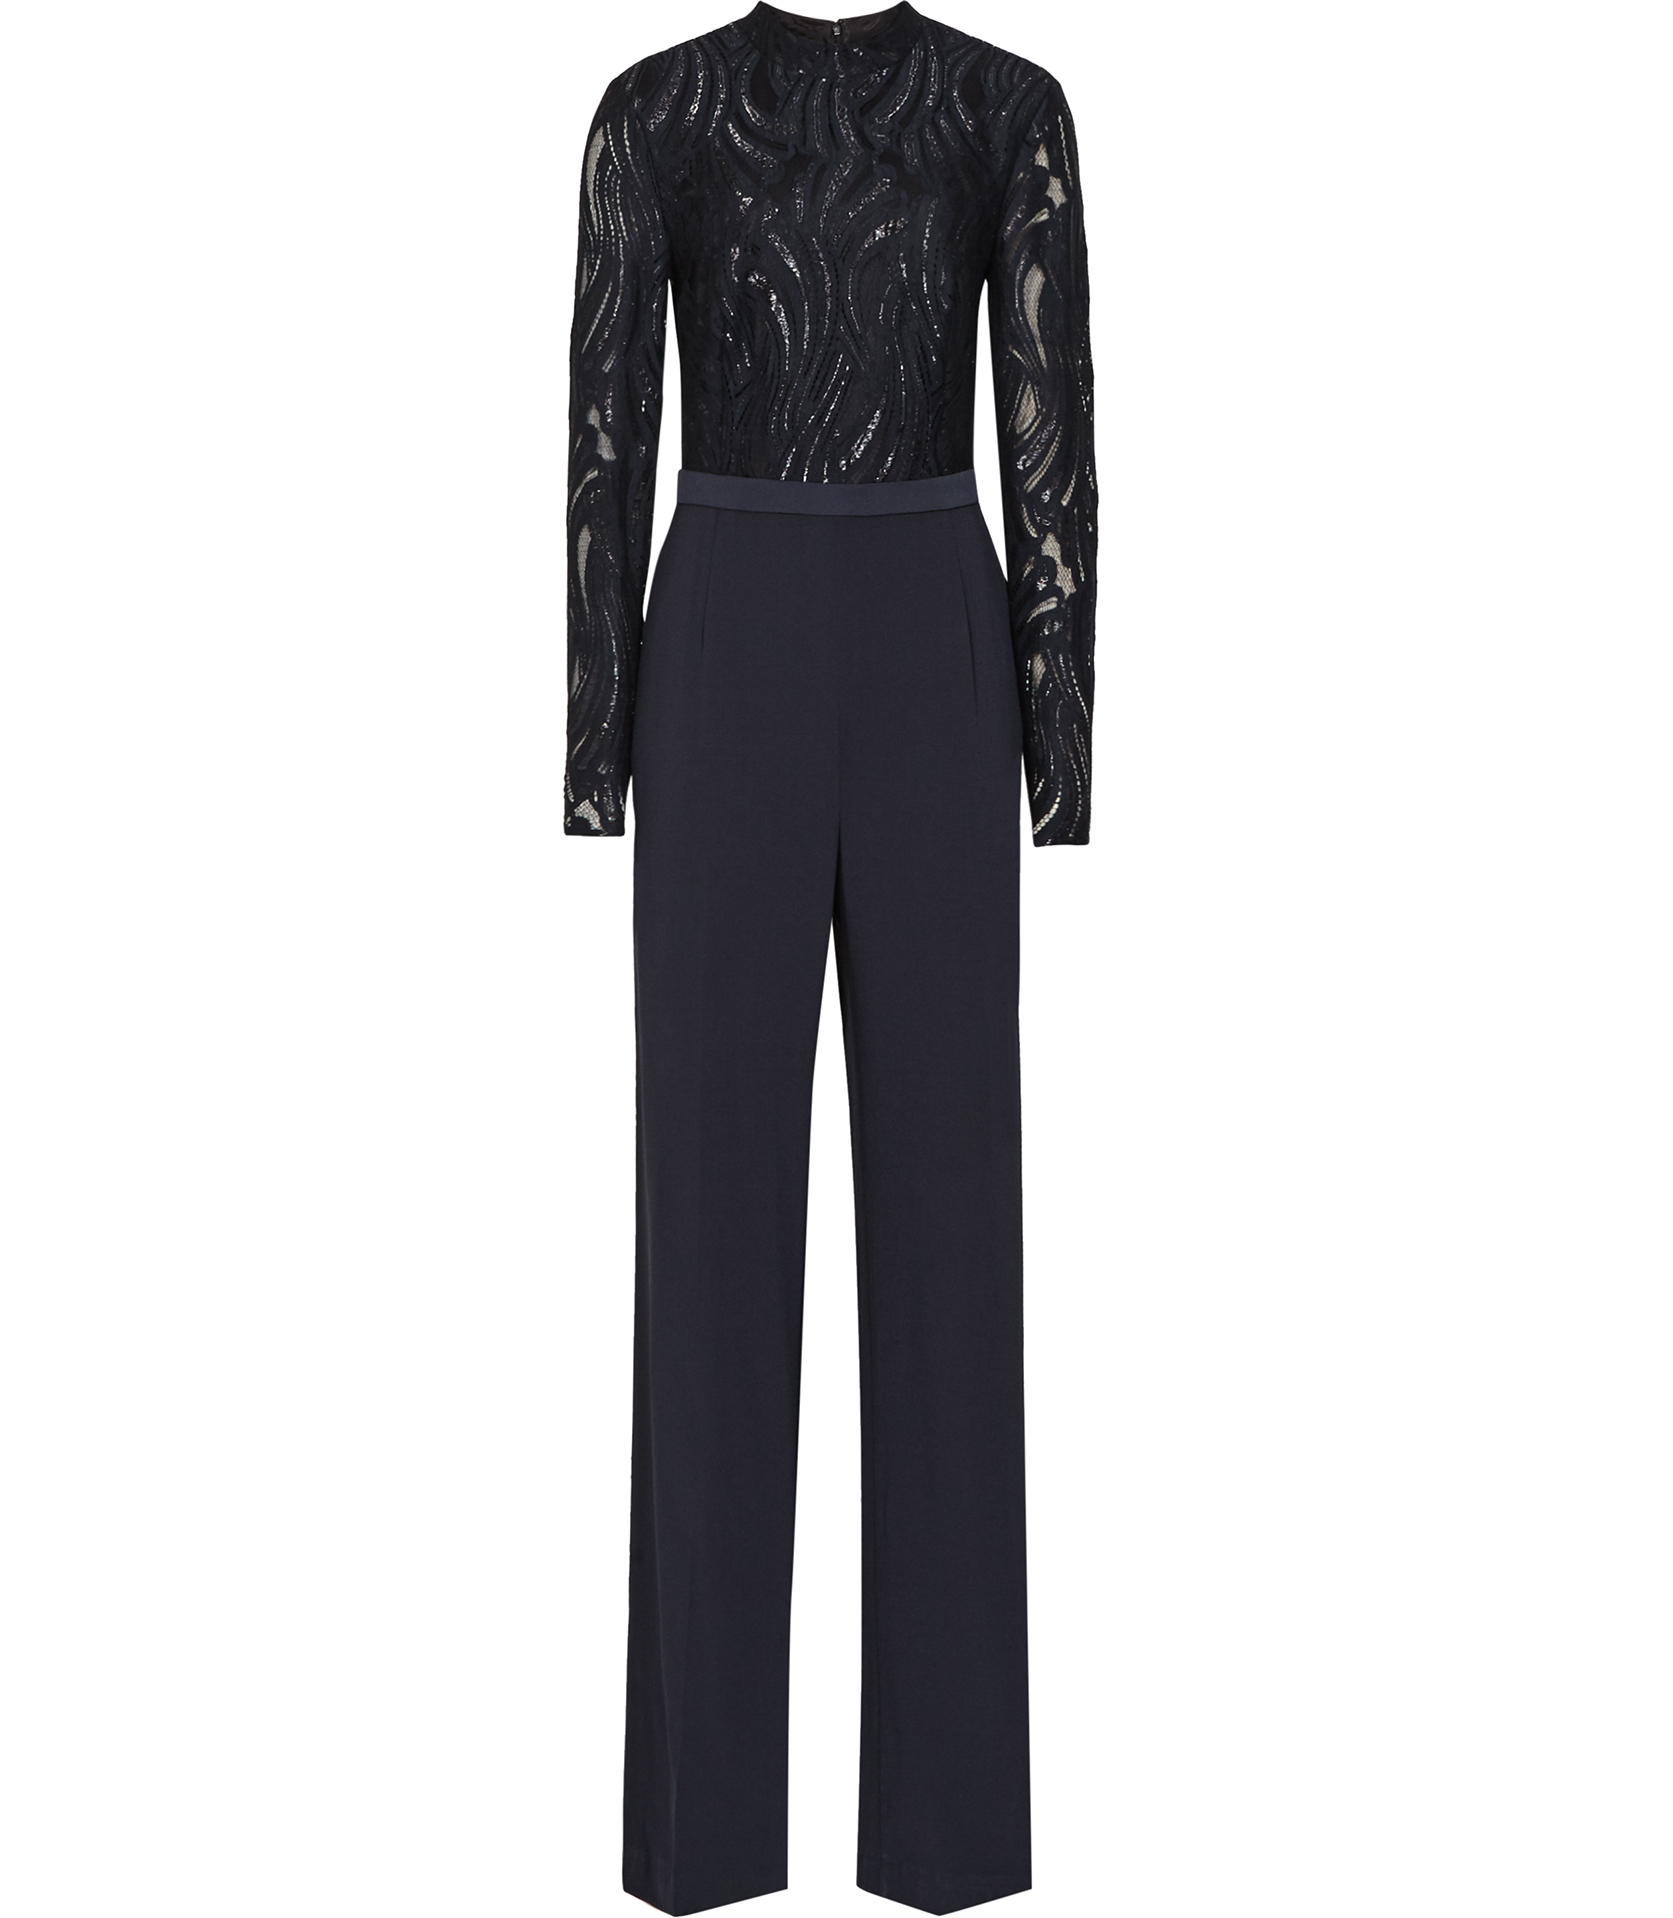 7f6063f3a843 Lyst - Reiss Oman Lace-top Jumpsuit in Black